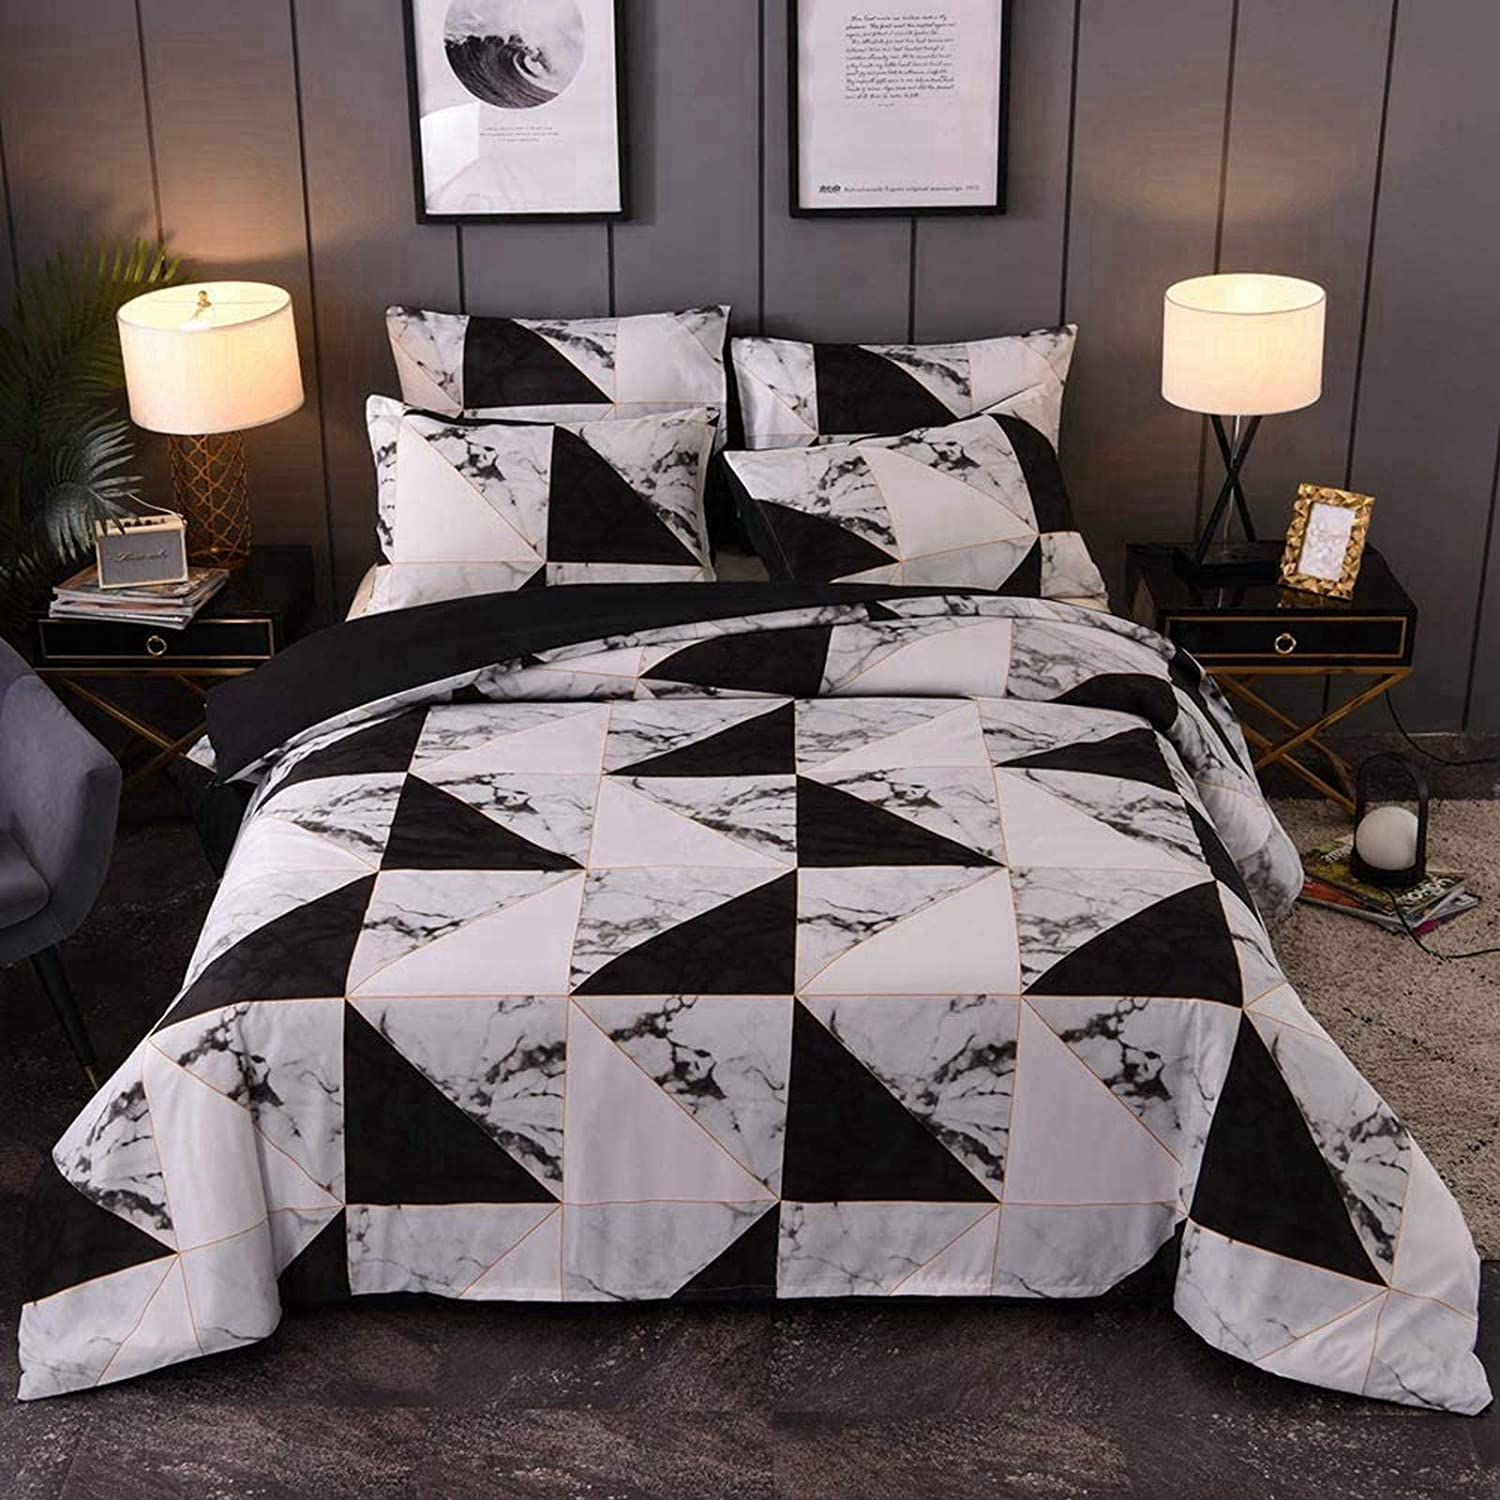 Inexpensive Marble Pattern Bedding Duvet Fees free Cover Set ?White Grey Patter